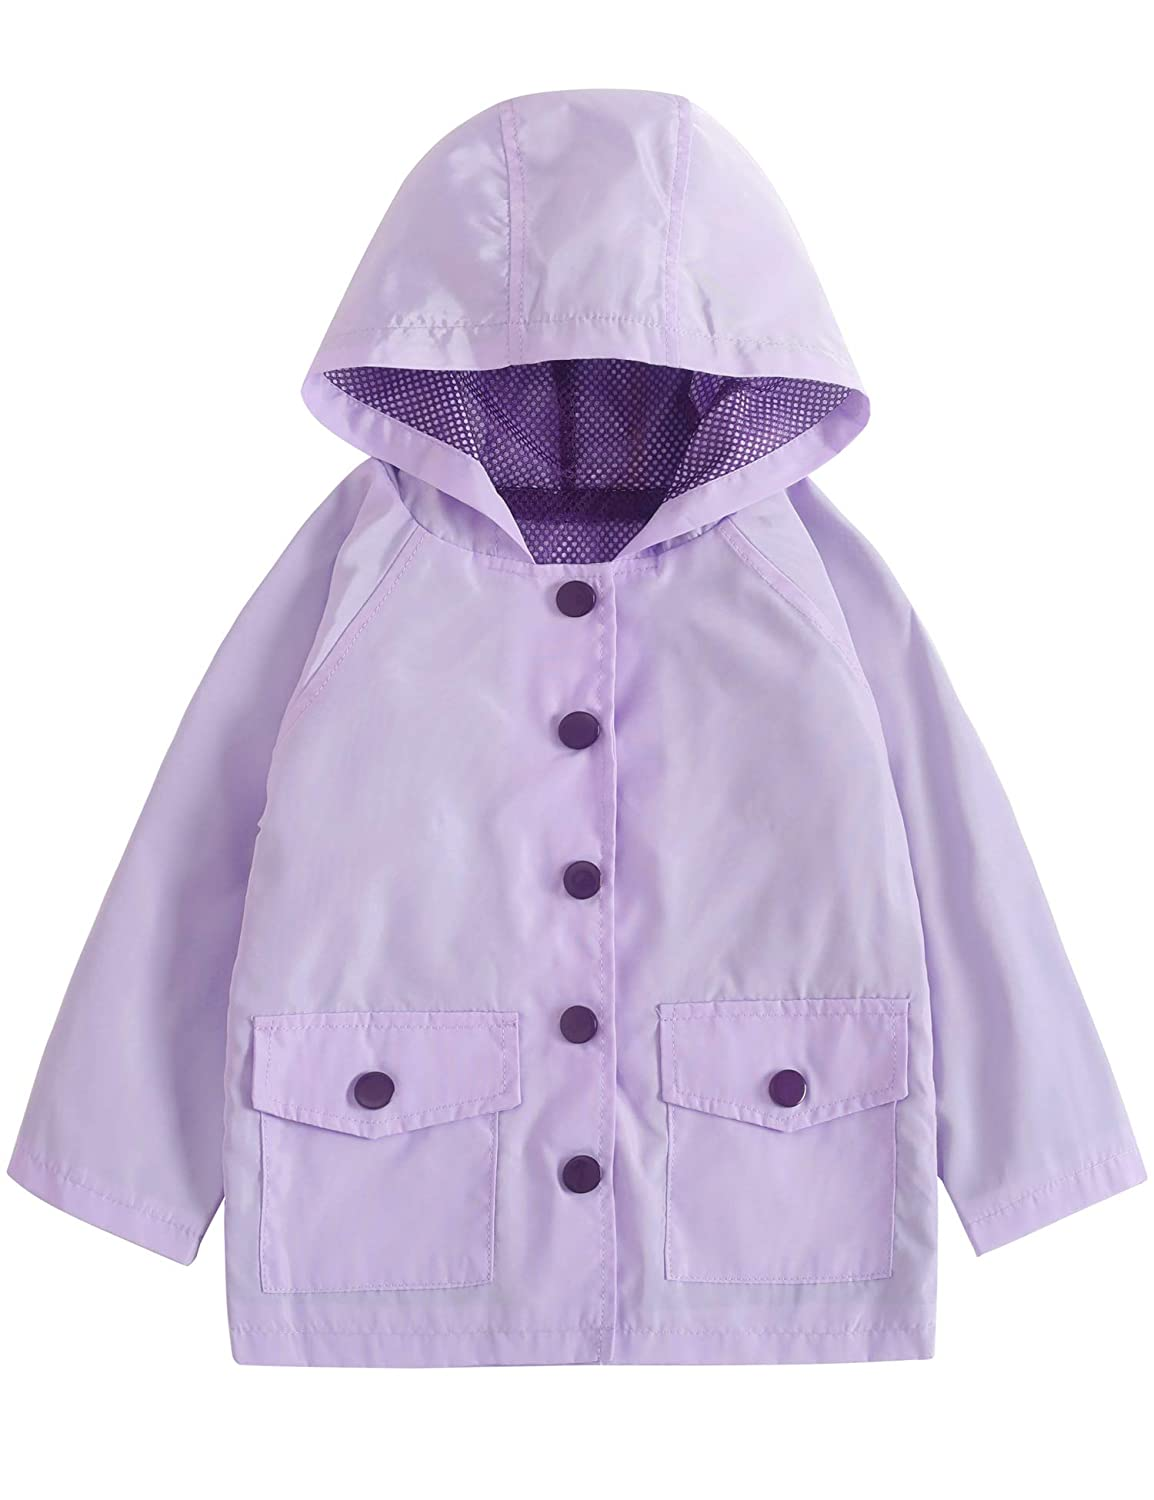 YNIQ Girls' Lightweight Raincoats